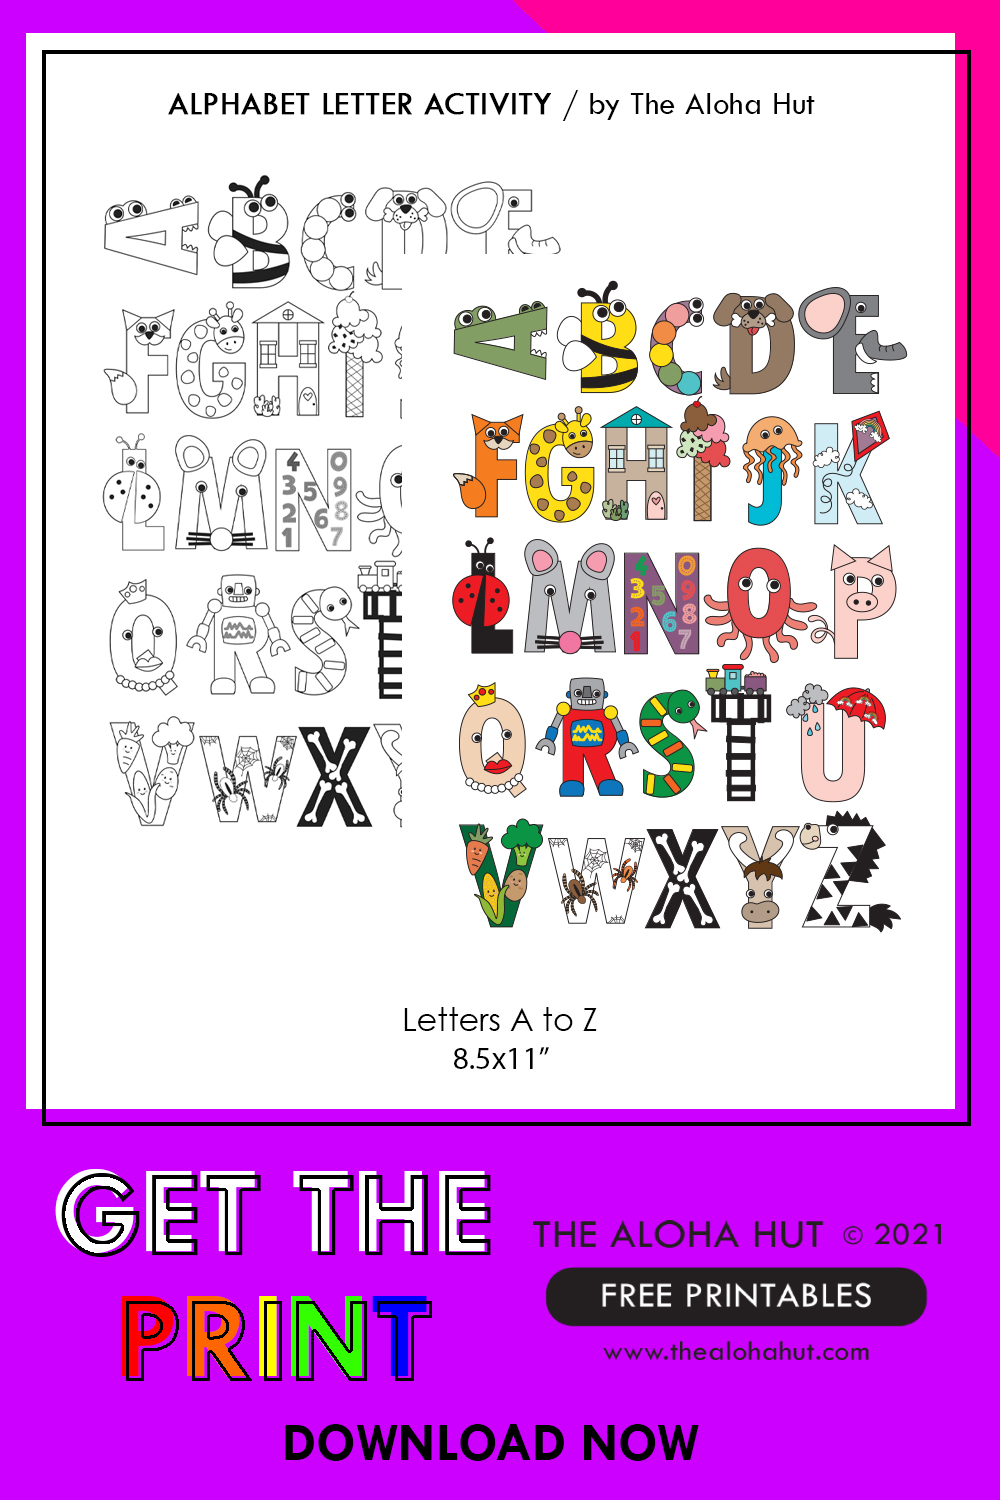 Free Printable Alphabet Letter Crafts 10 by the Aloha Hut